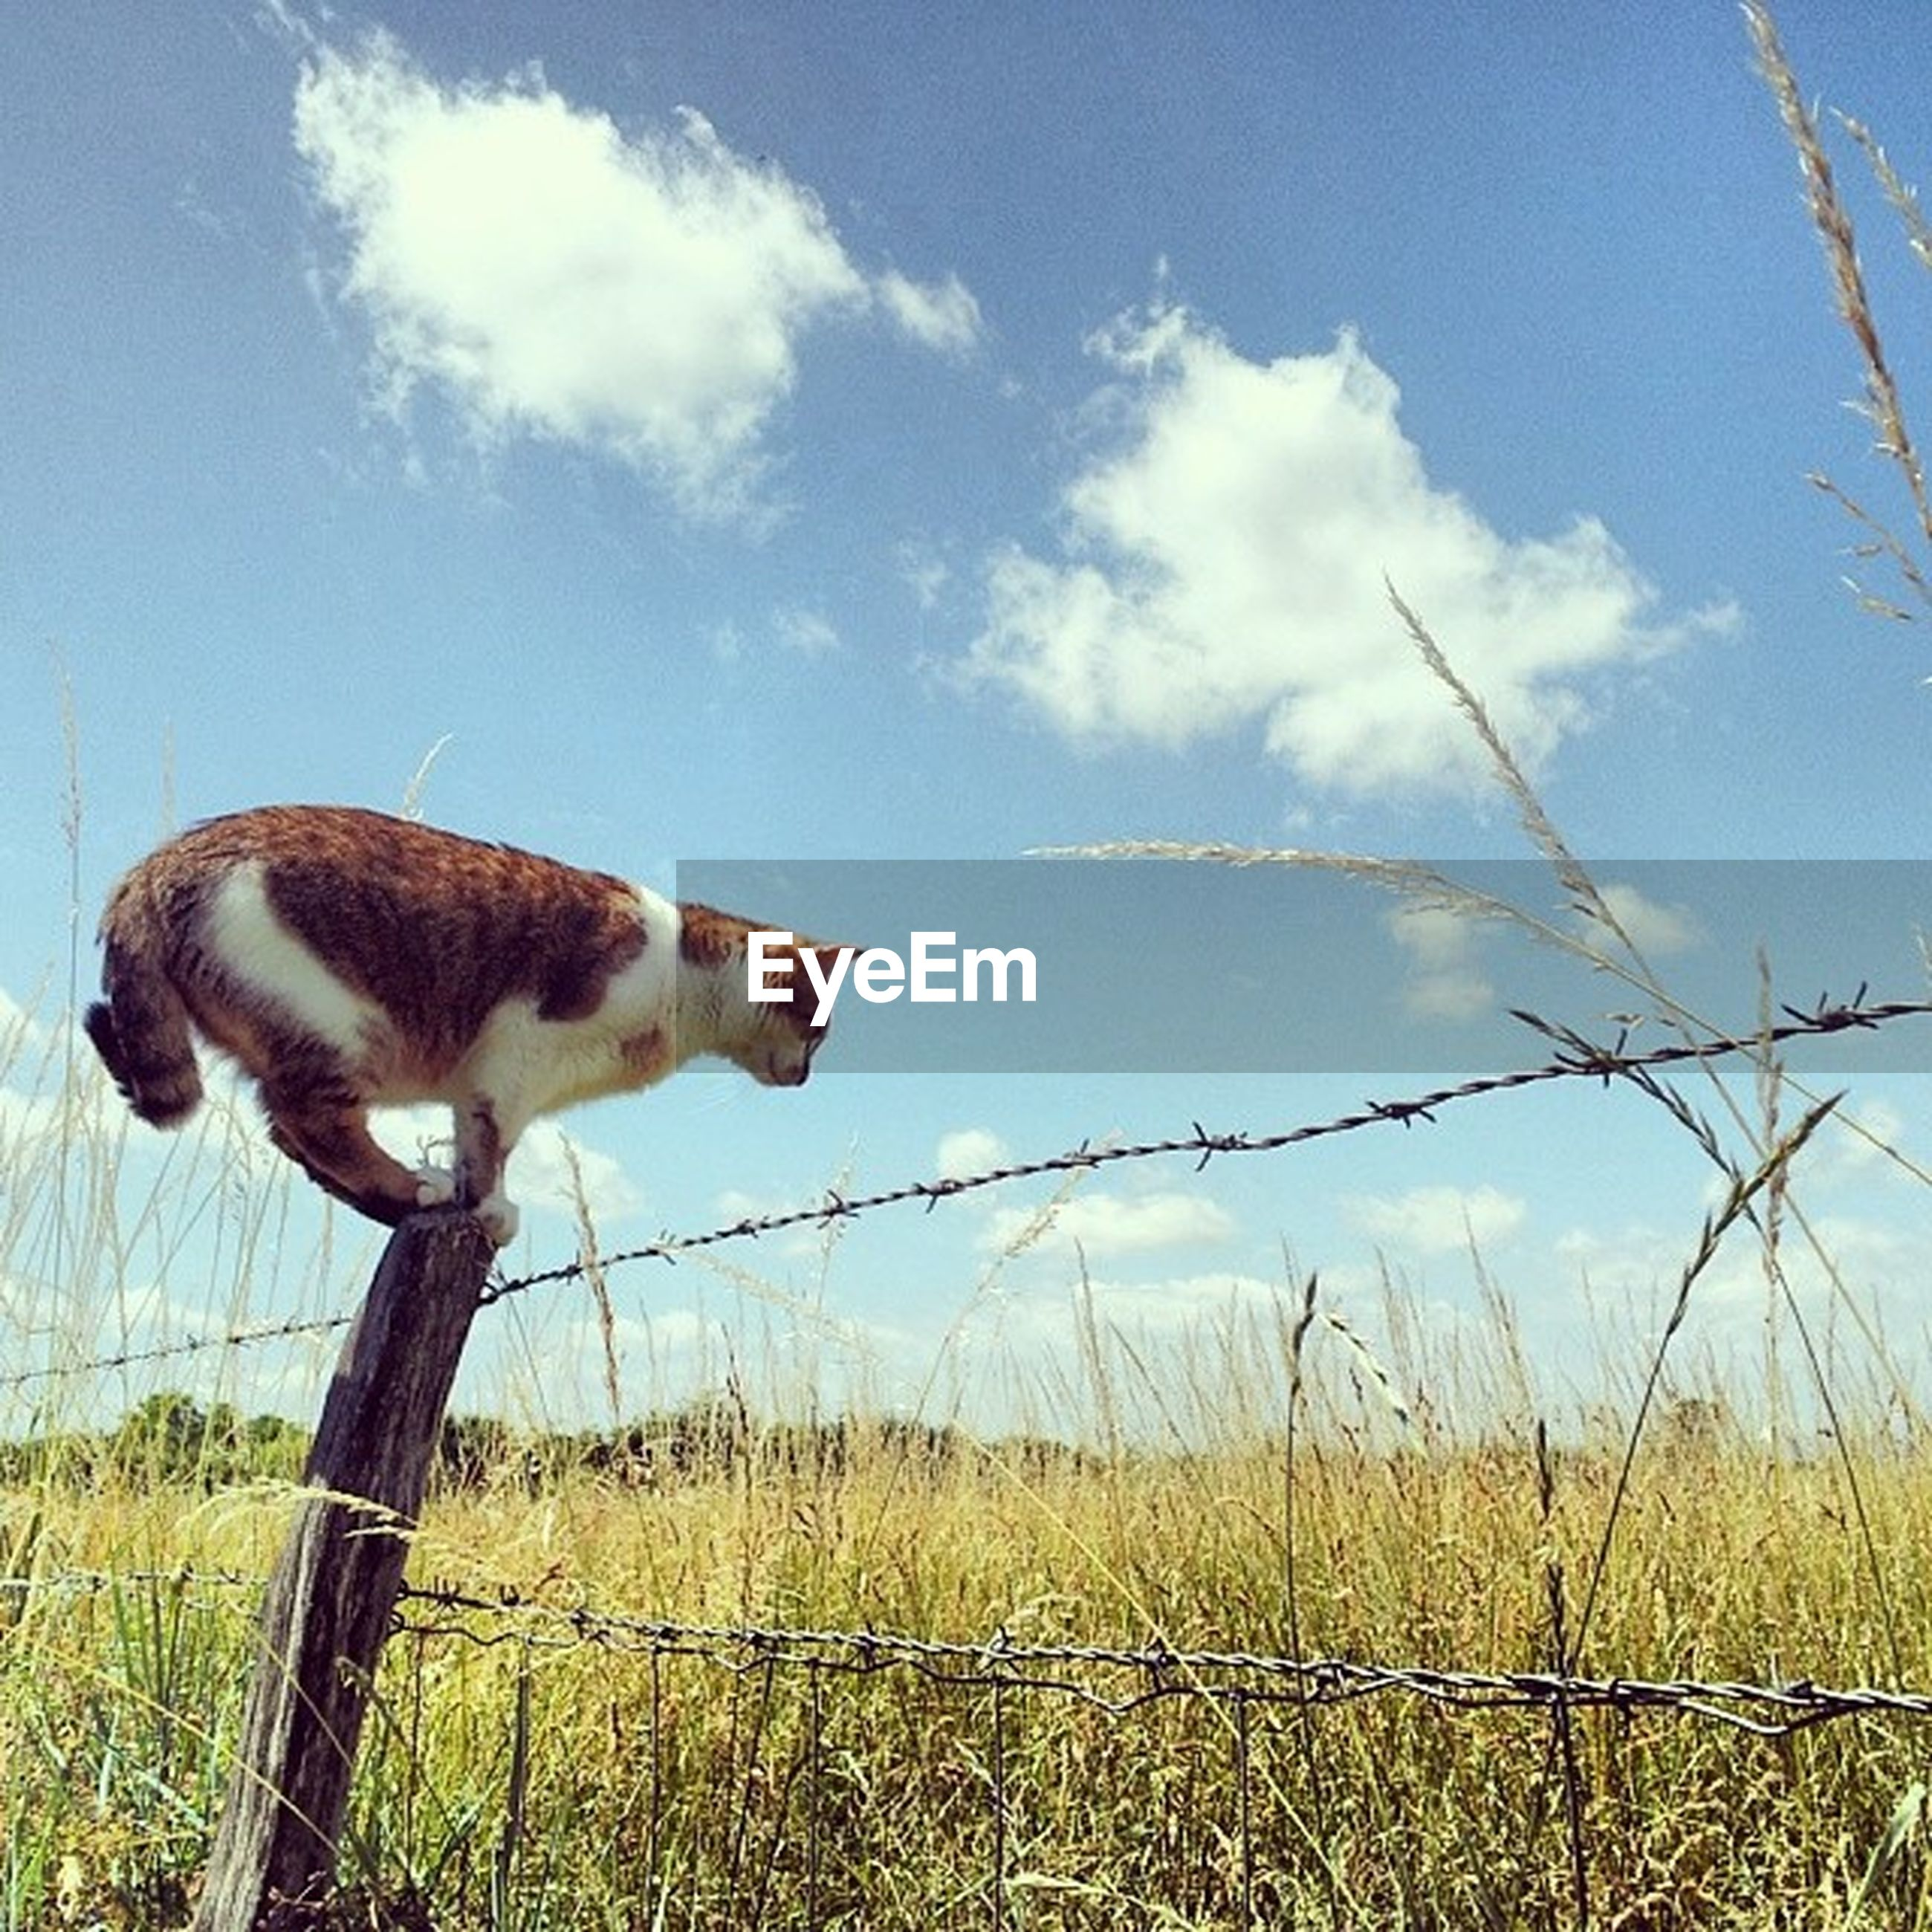 animal themes, mammal, sky, one animal, domestic animals, fence, field, grass, livestock, full length, standing, safety, cloud, grassy, nature, day, cloud - sky, outdoors, no people, two animals